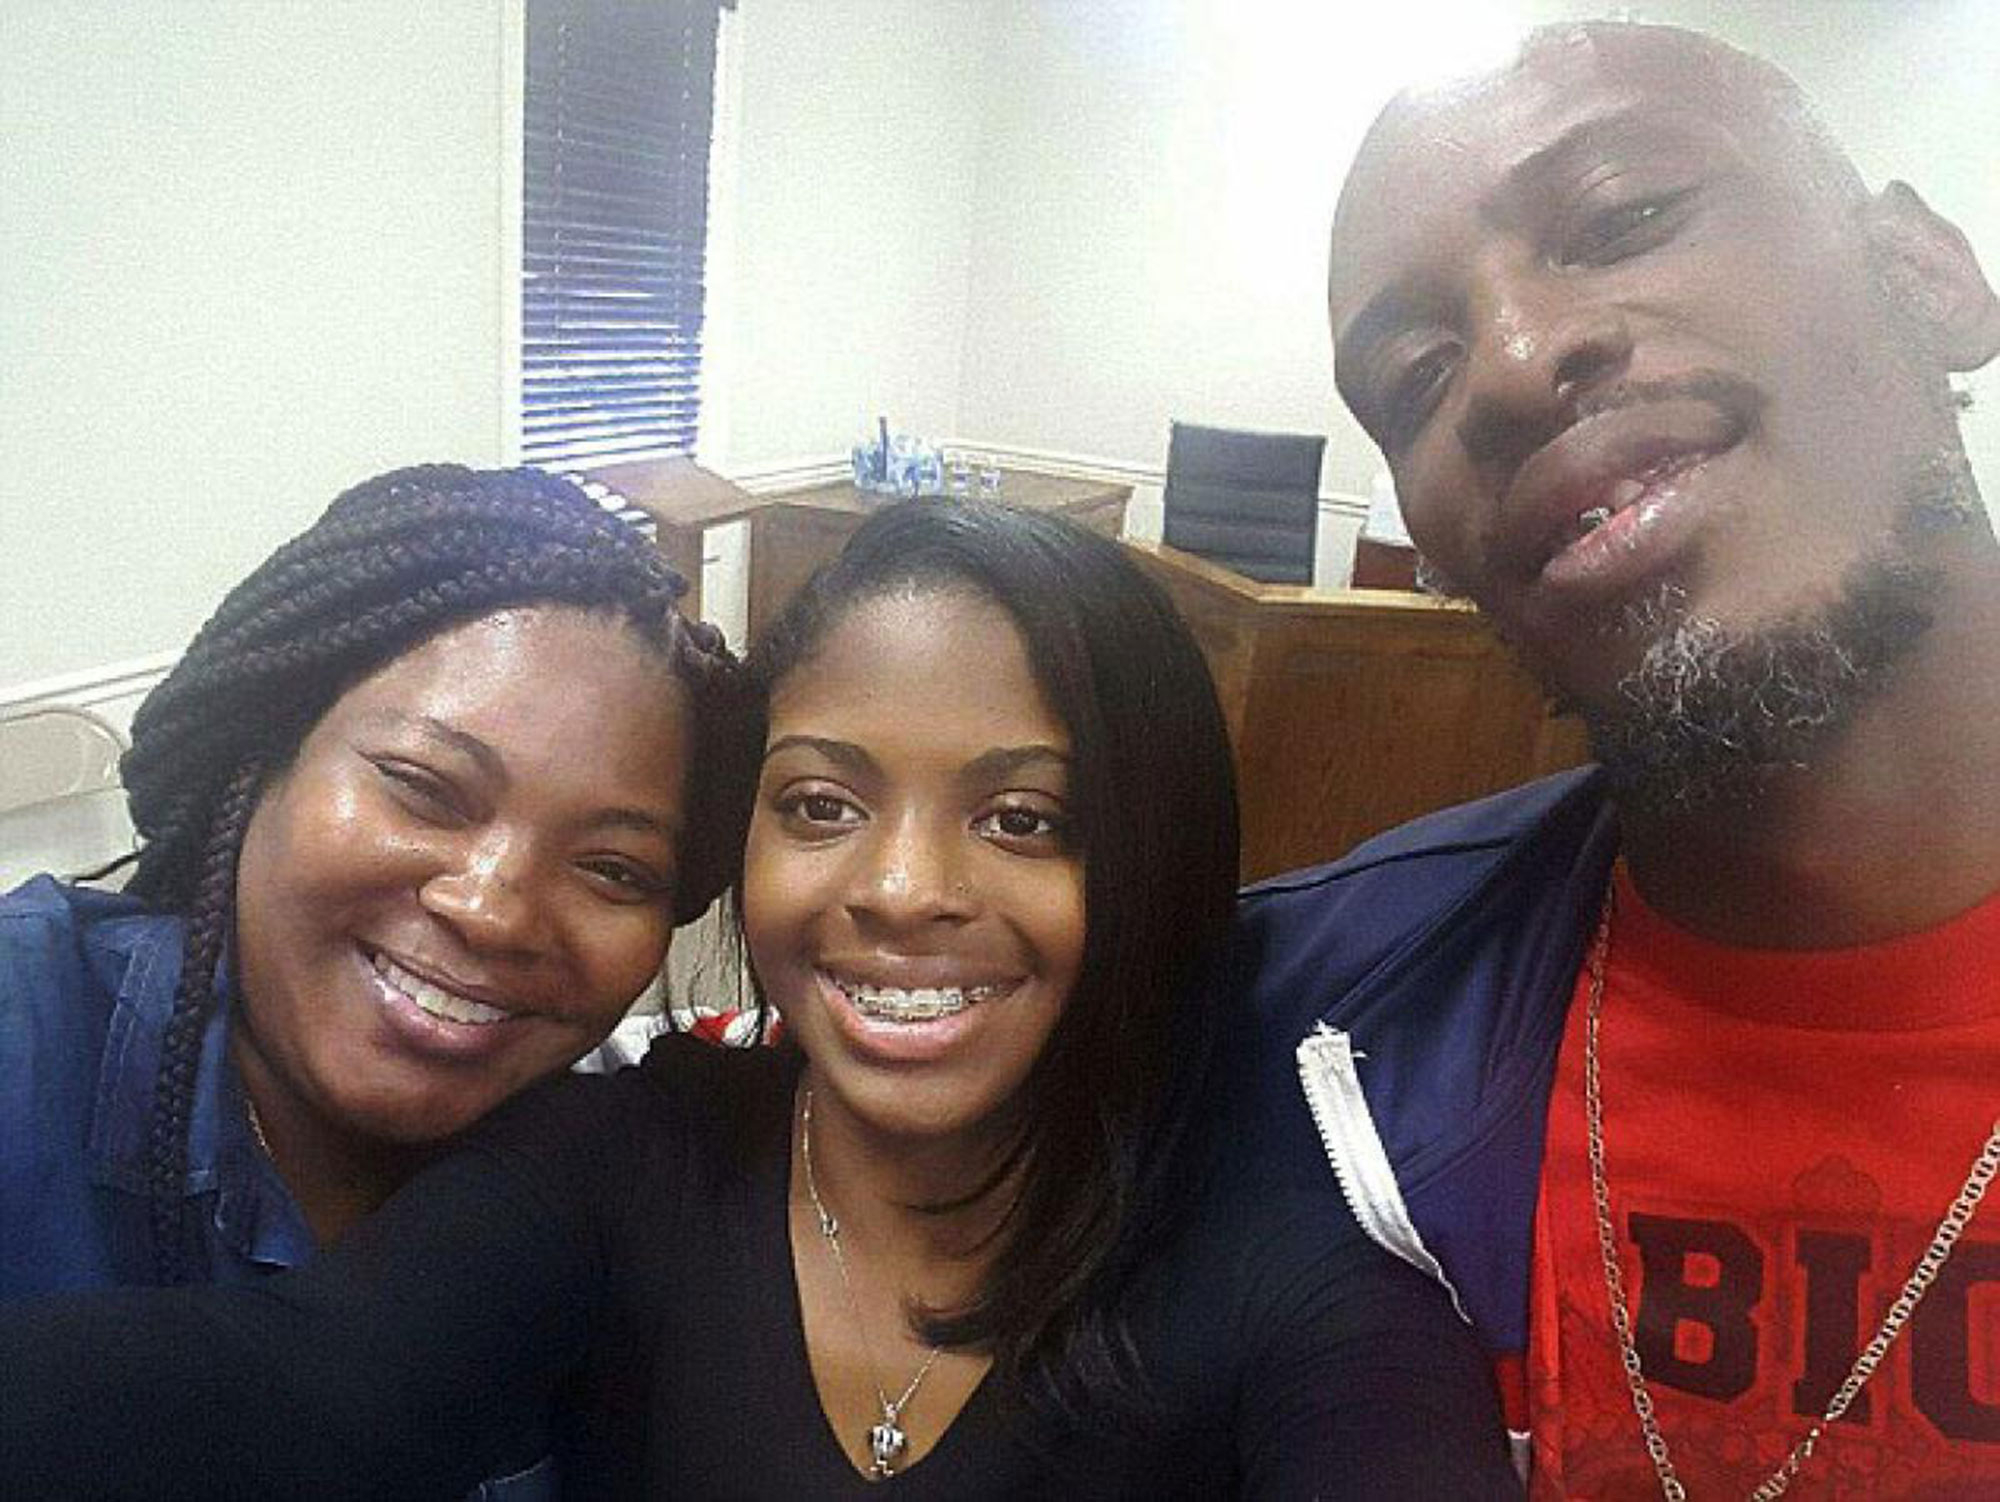 Parents reunite with abducted daughter Kamiyah Mobley